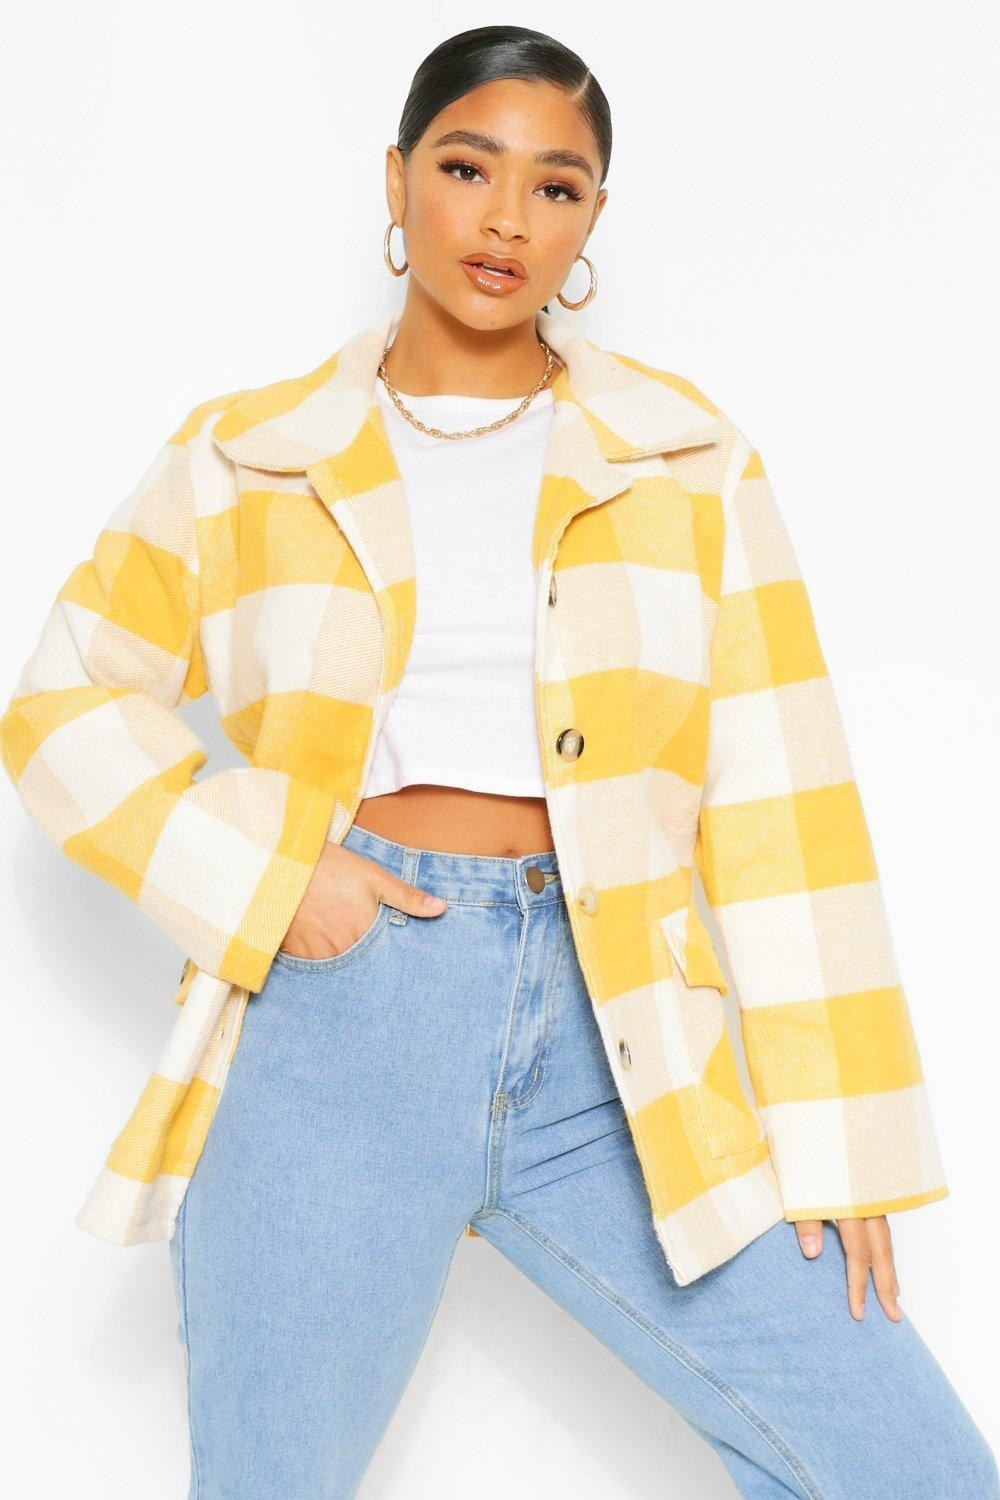 Model wearing the button-front coat with a yellow plaid pattern and oversized collar